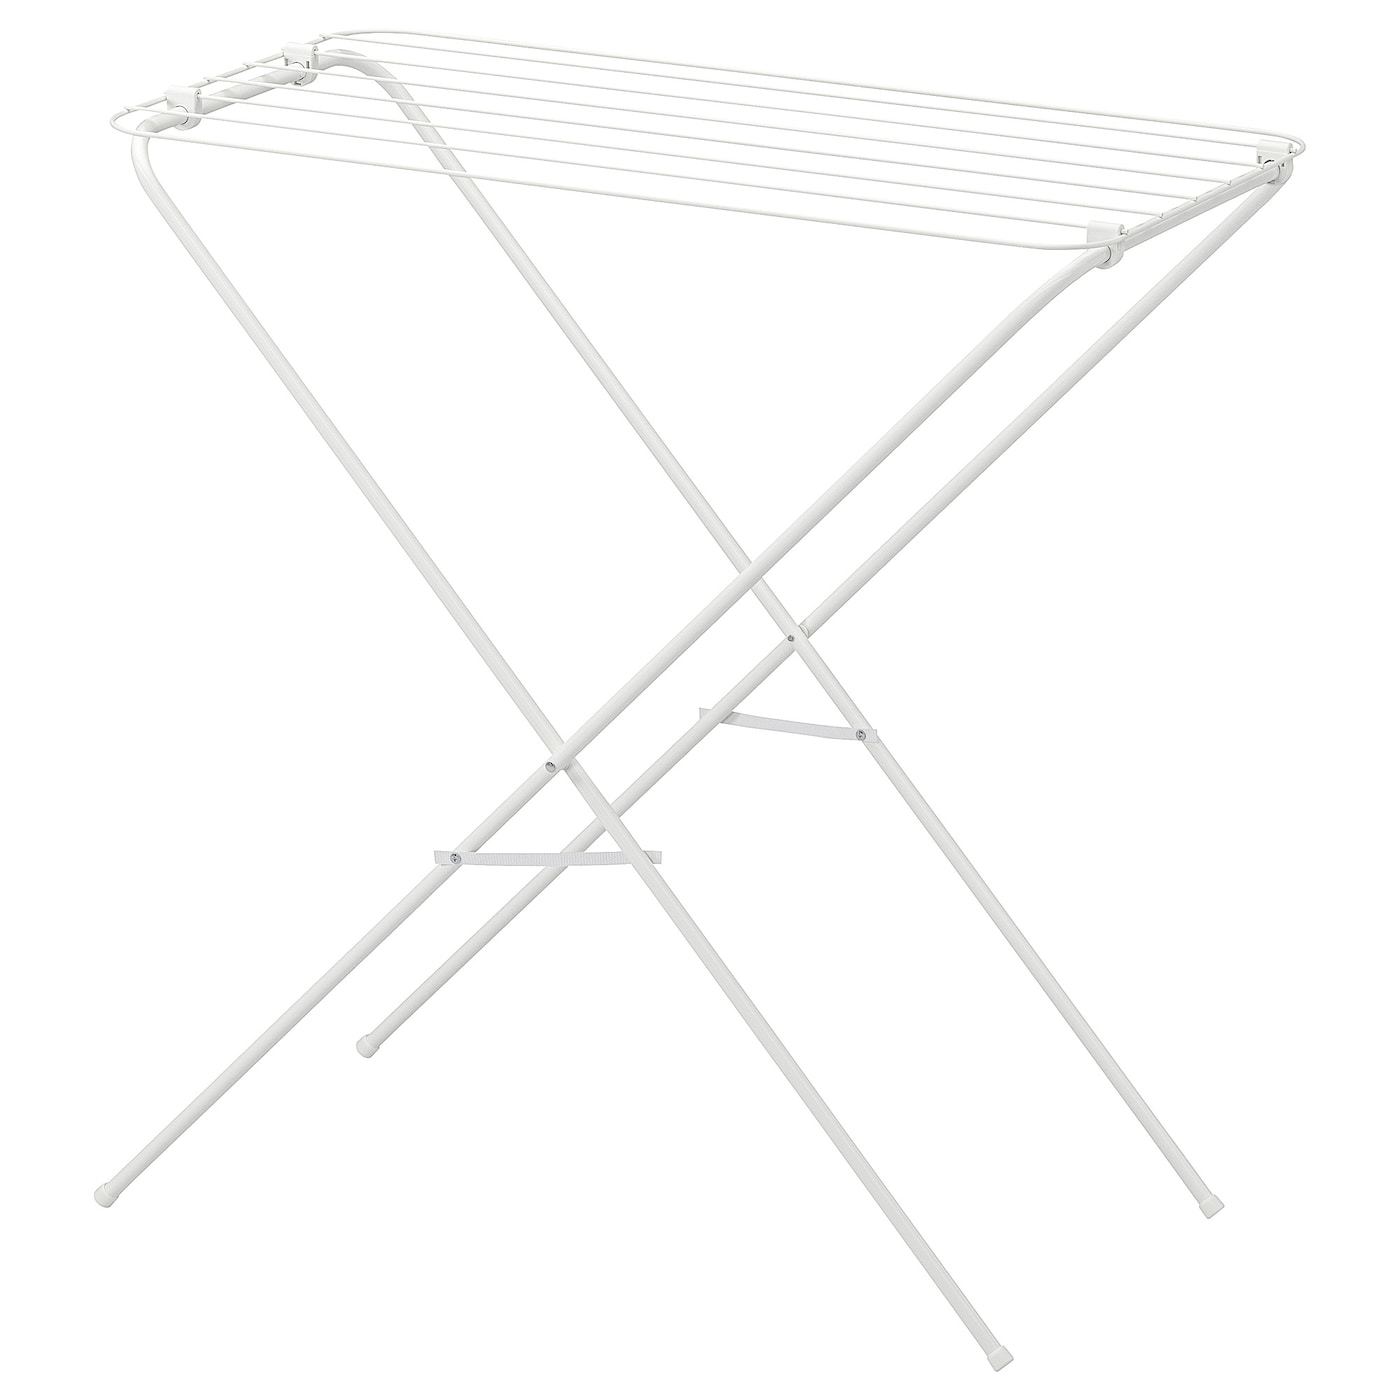 IKEA JÄLL drying rack, in/outdoor Simple to fold up and put away.